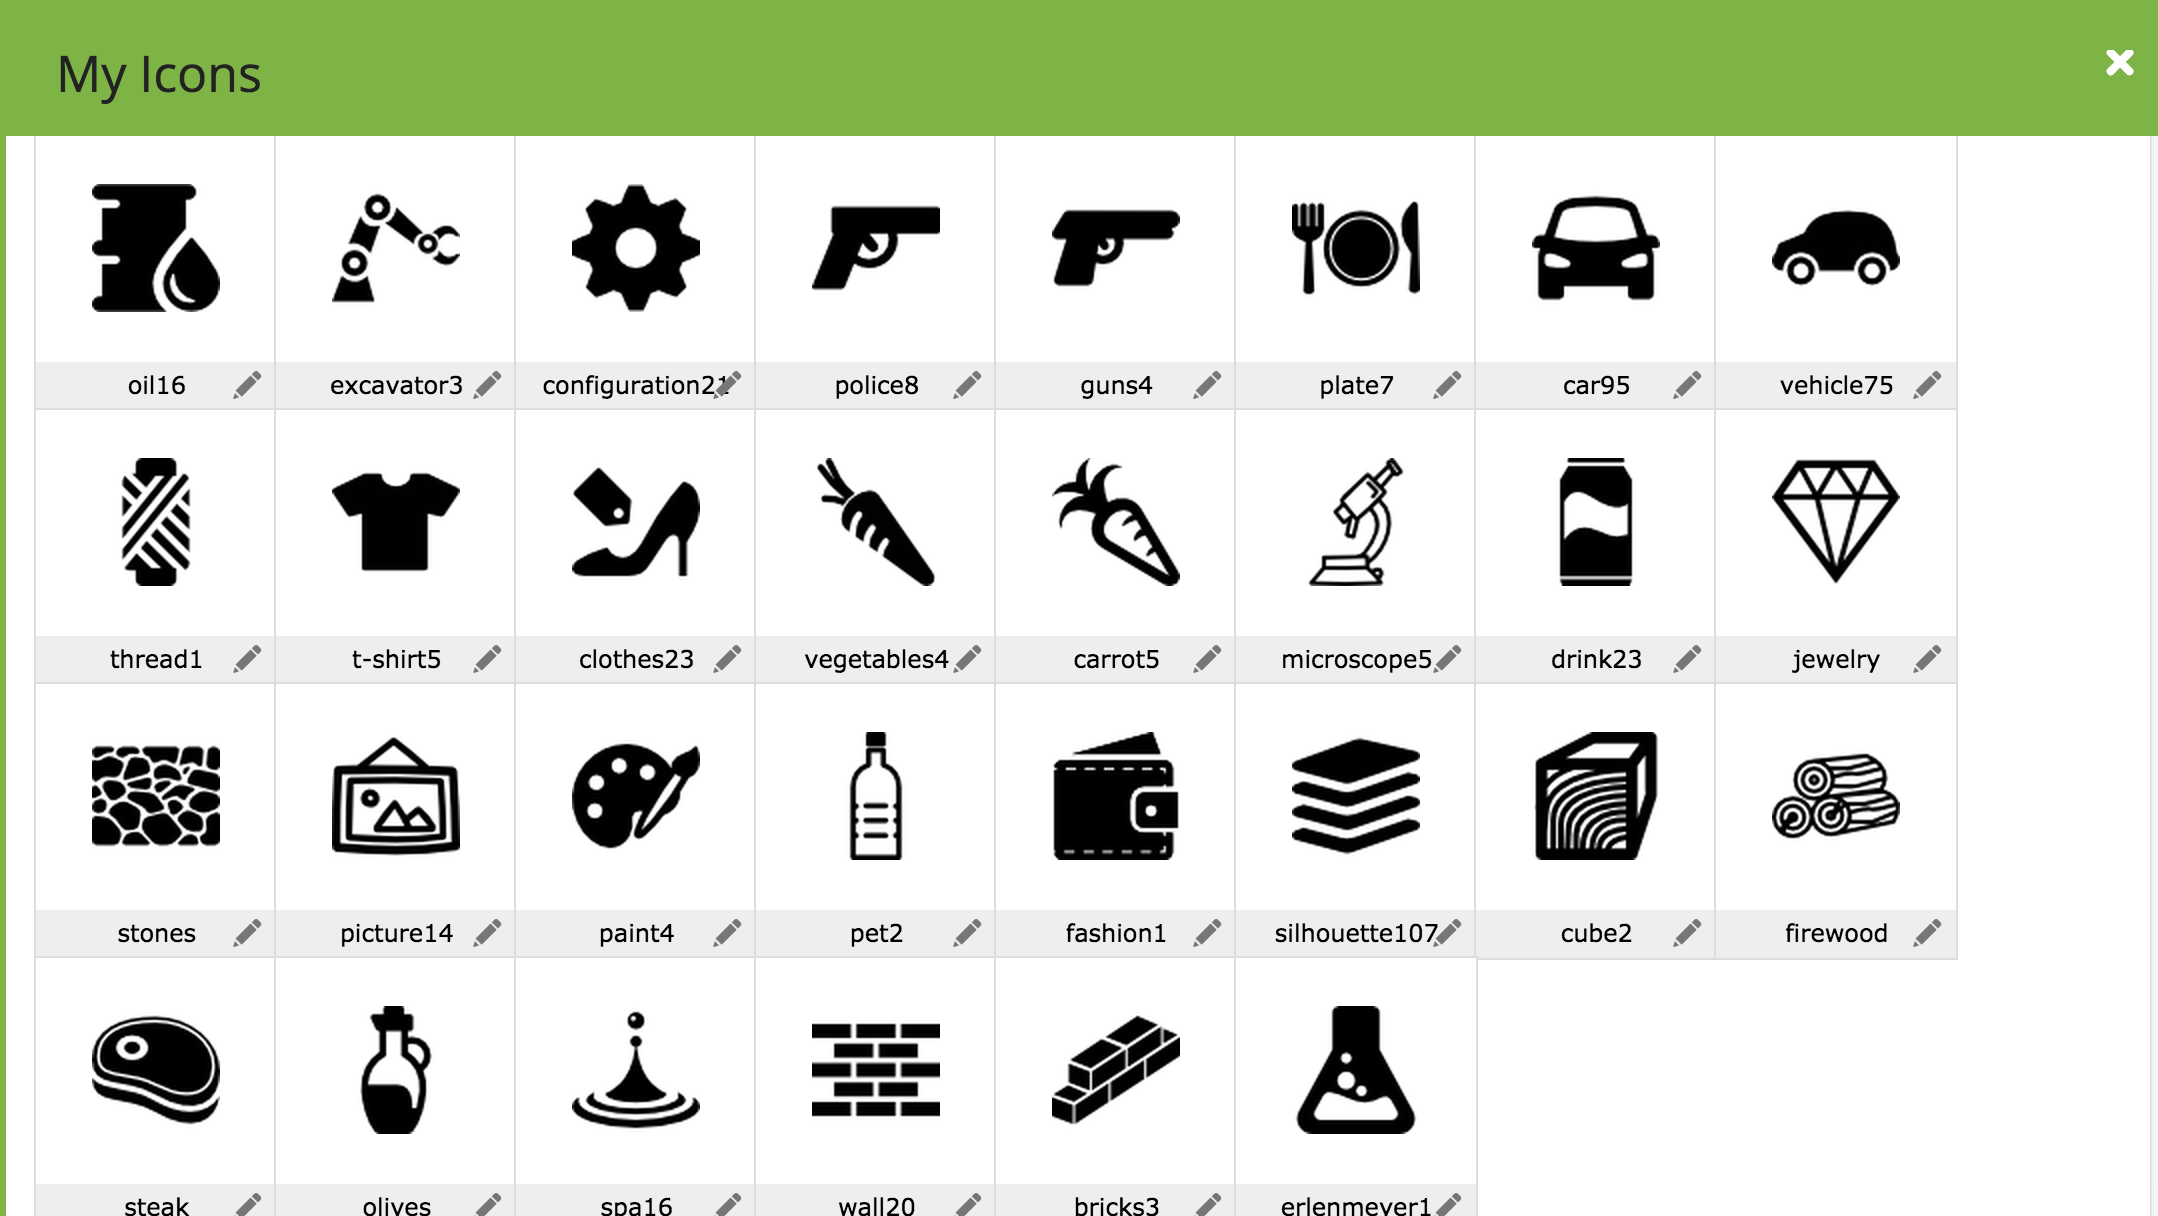 My Flaticon selection for the treemap. For some categories I selected multiple icons, to see which ones worked best.